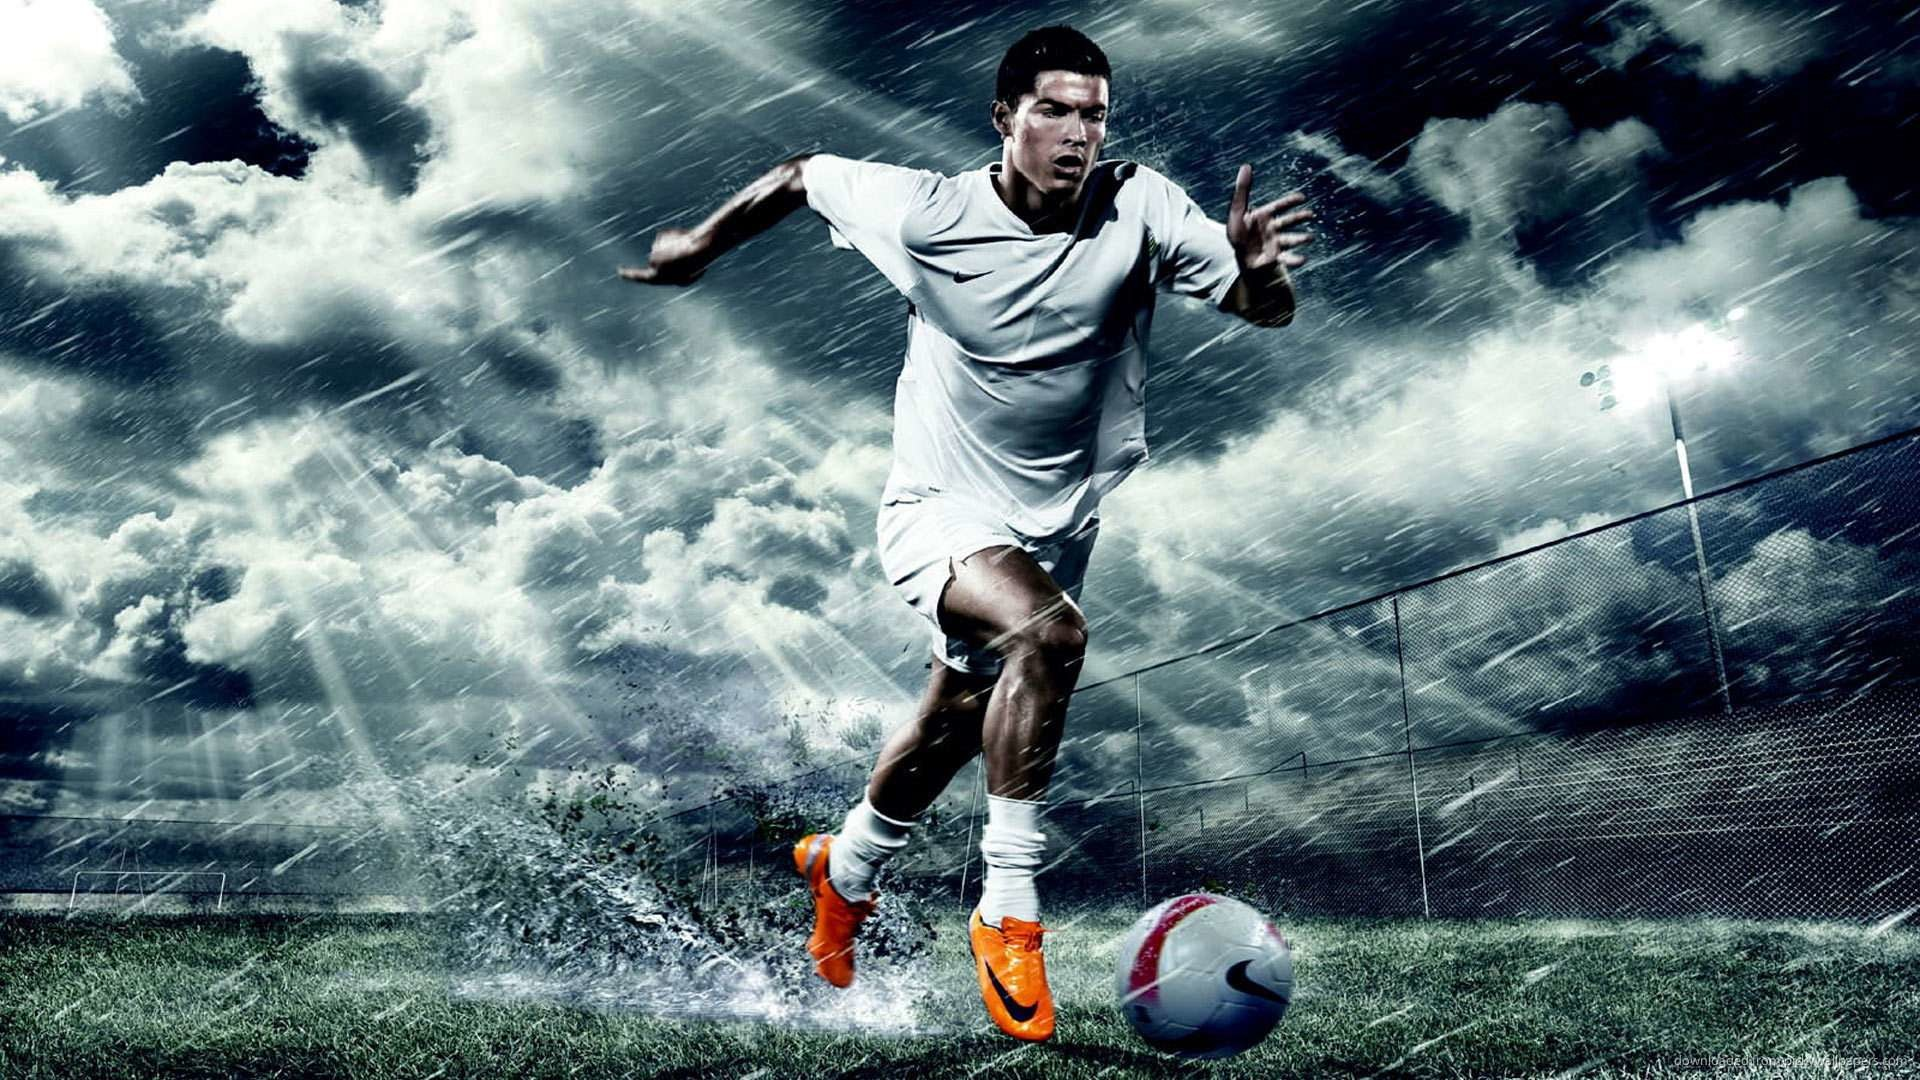 1920x1080 Soccer Wallpaper Hd - image #812104